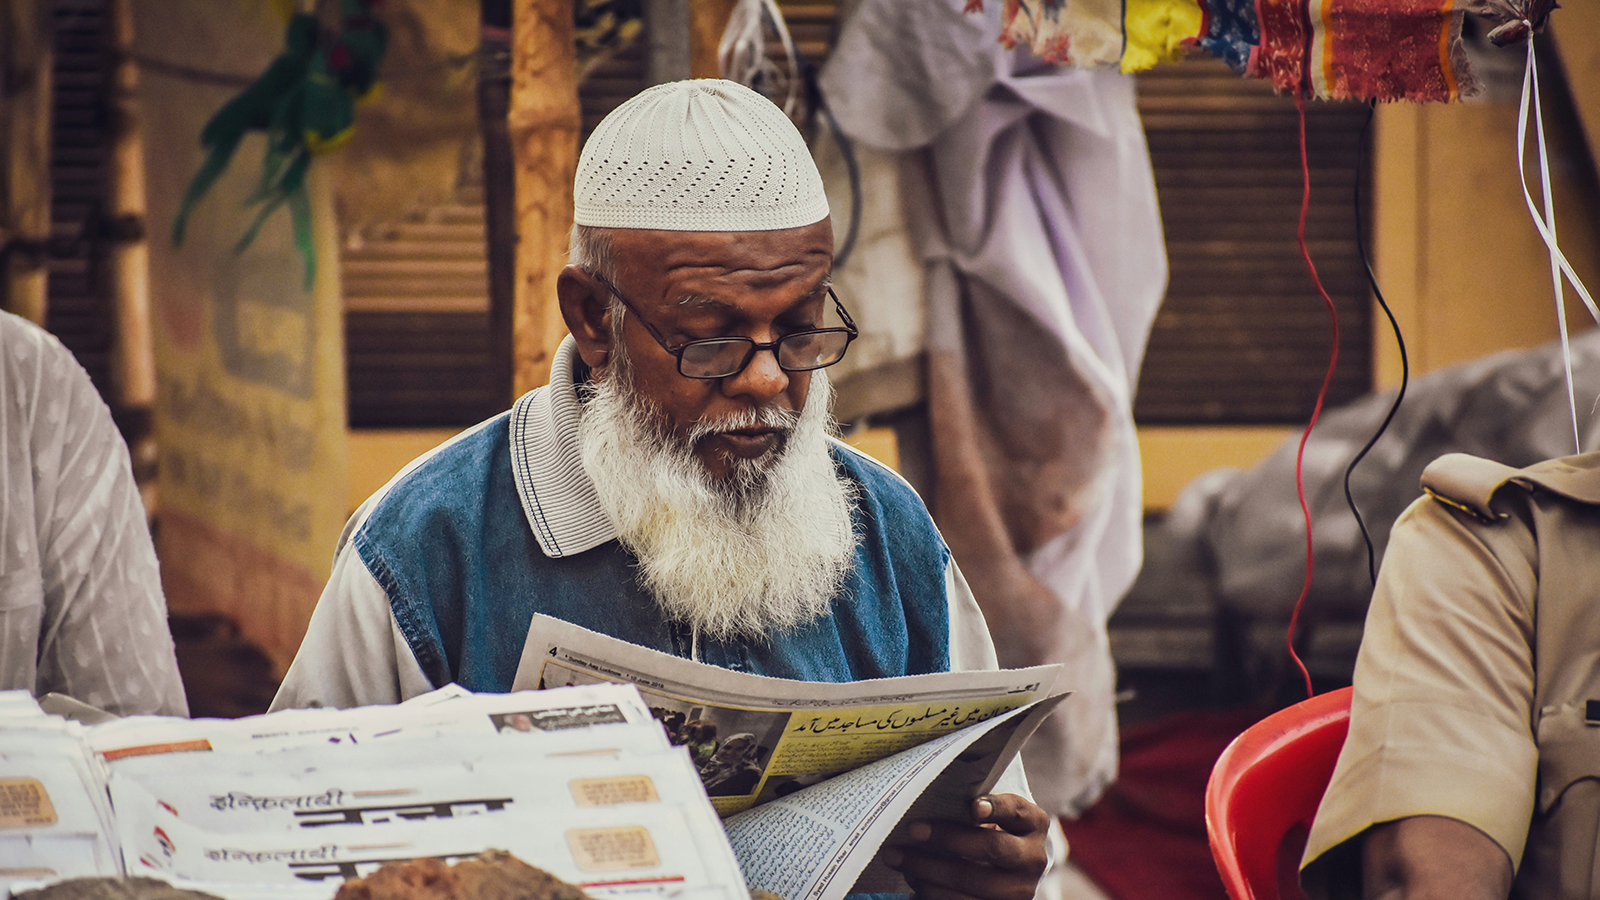 Religious man reading a newspaper in the market.